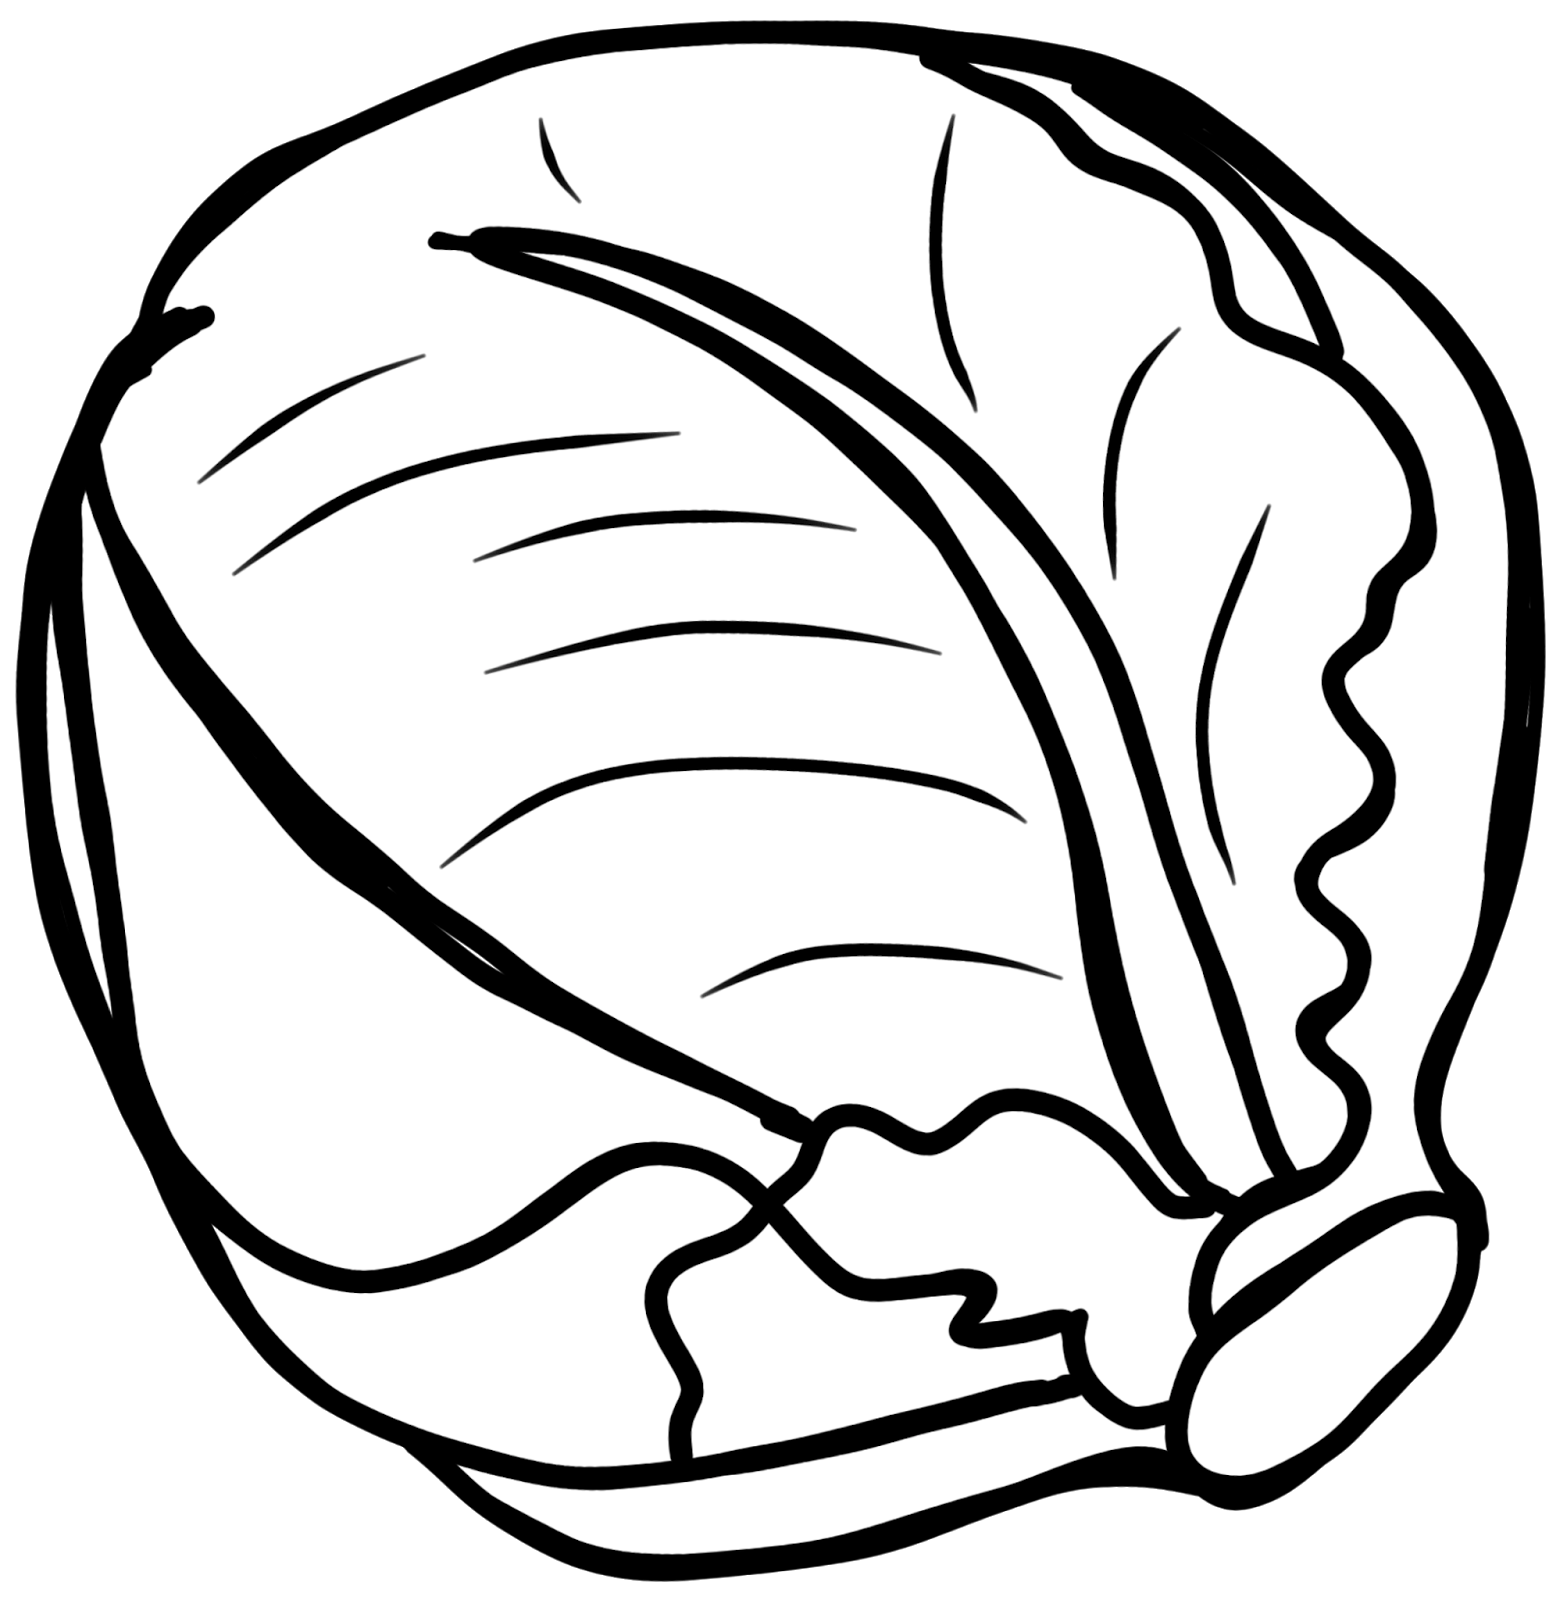 Cabbage Black And White Clipart.